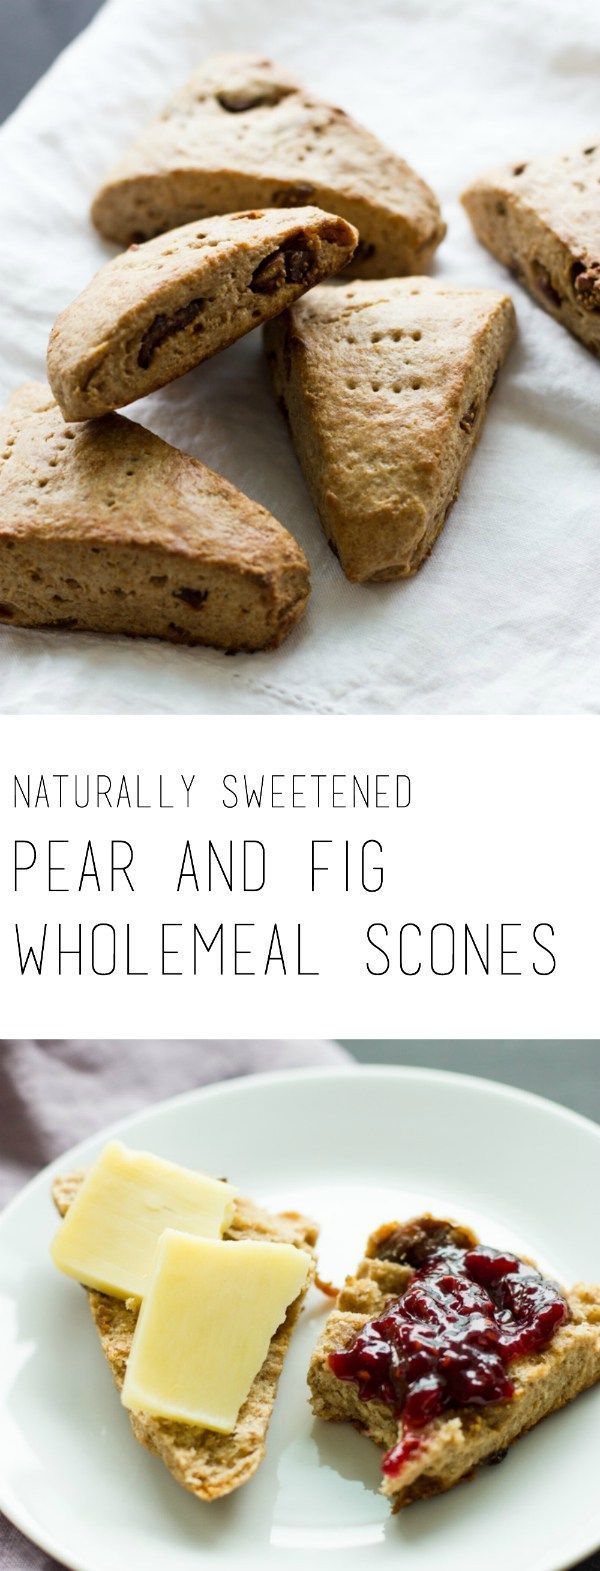 Pureed pear and dried figs make these healthy sugar free pear and fig wholemeal scones slightly sweet. Great for breakfast or as a snack with your coffee!